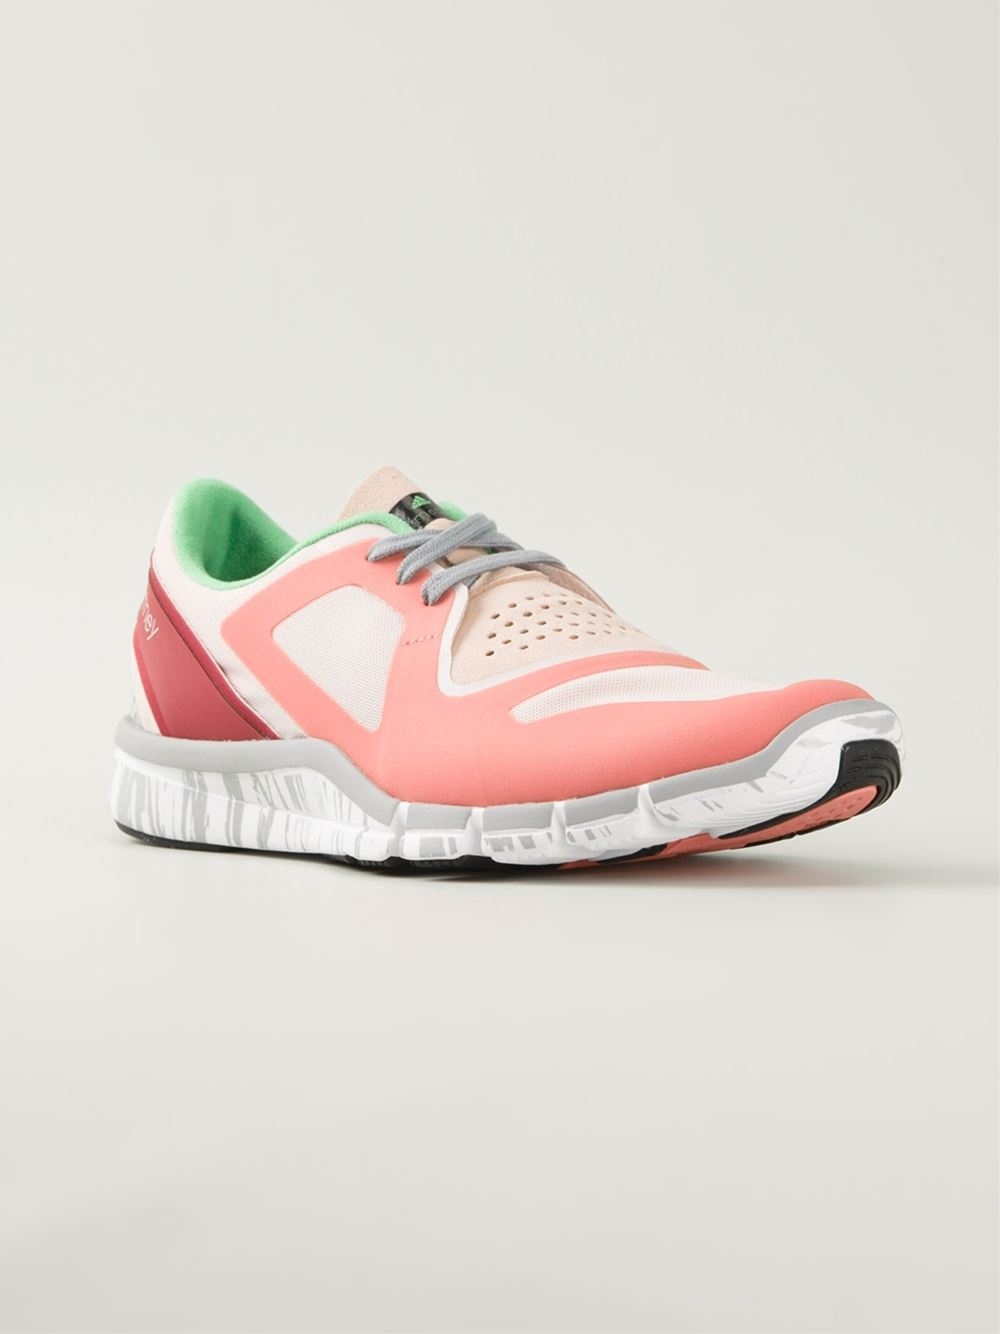 Adidas By Stella Mccartney Alayta Sneakers In Pink Pink